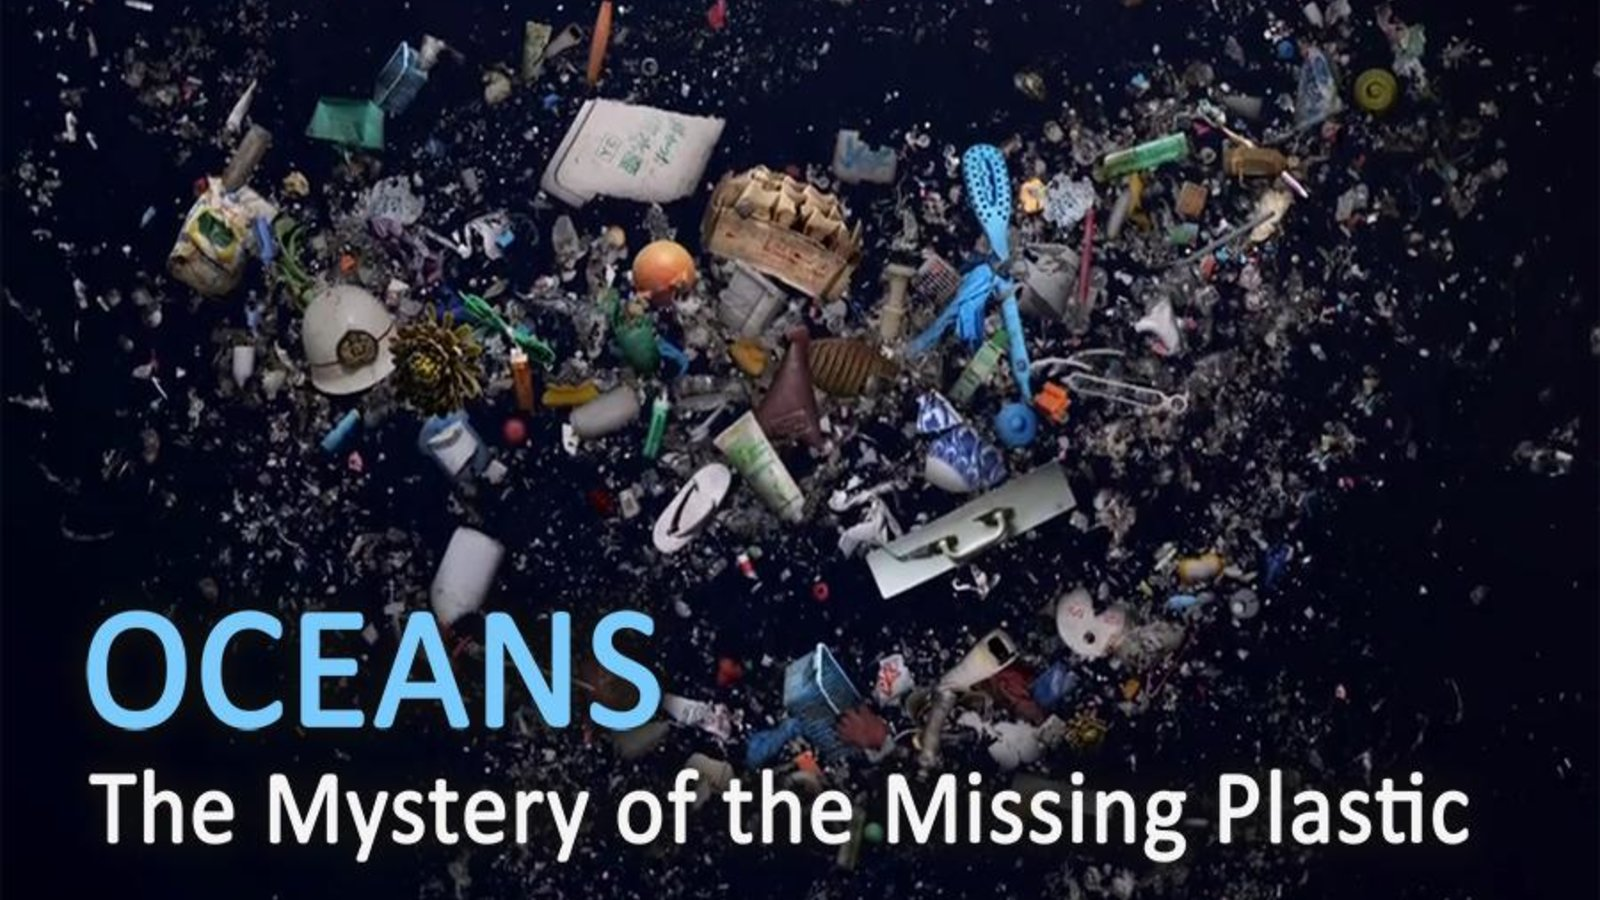 Oceans - The Mystery of the Missing Plastic